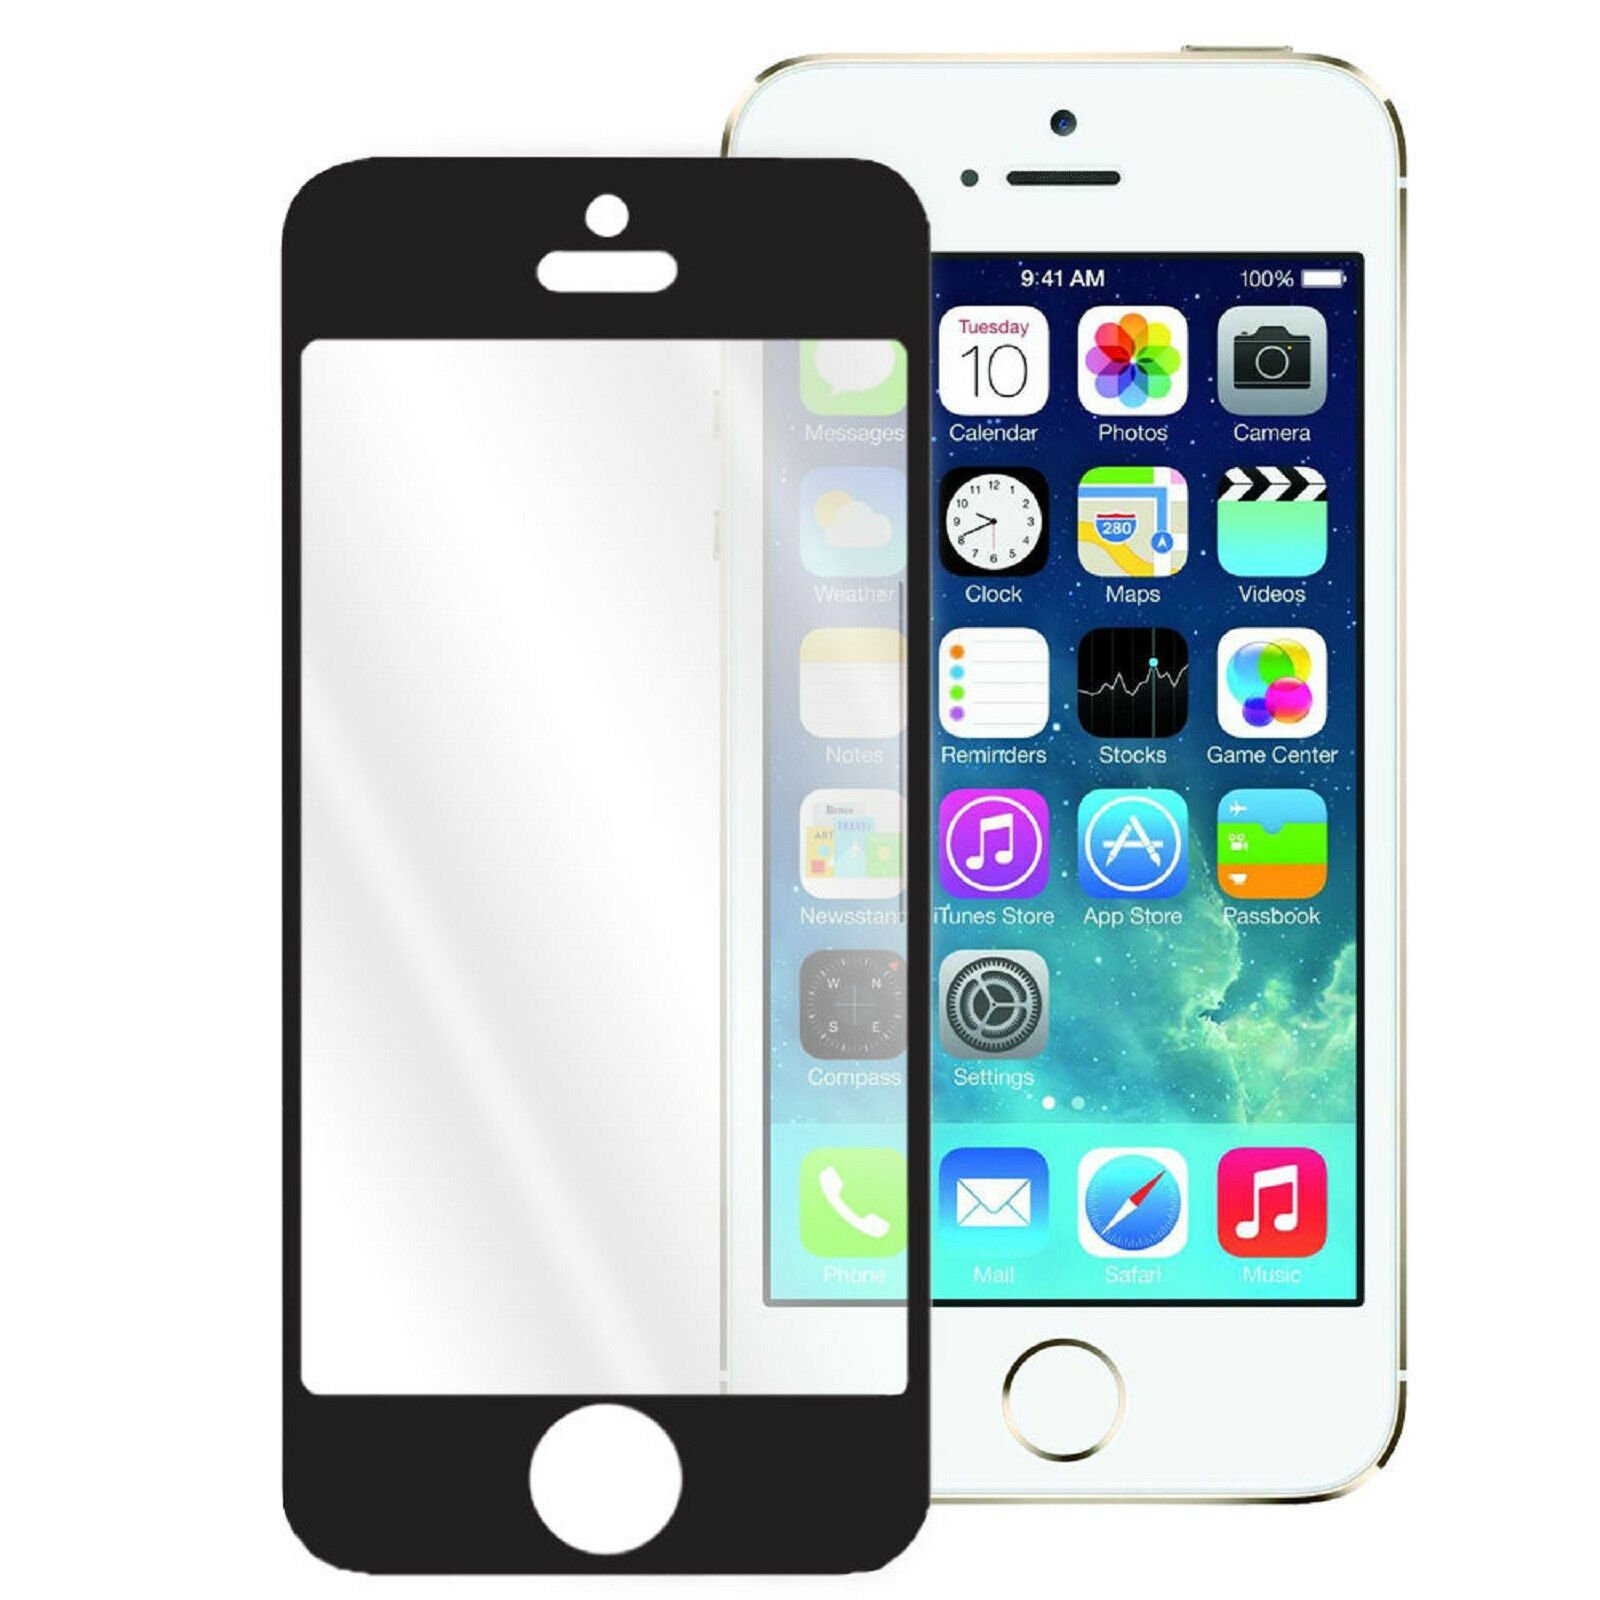 thumbnail 4 - Colorful Real Tempered Glass Film Screen Protector for iPhone 5 5S 5C